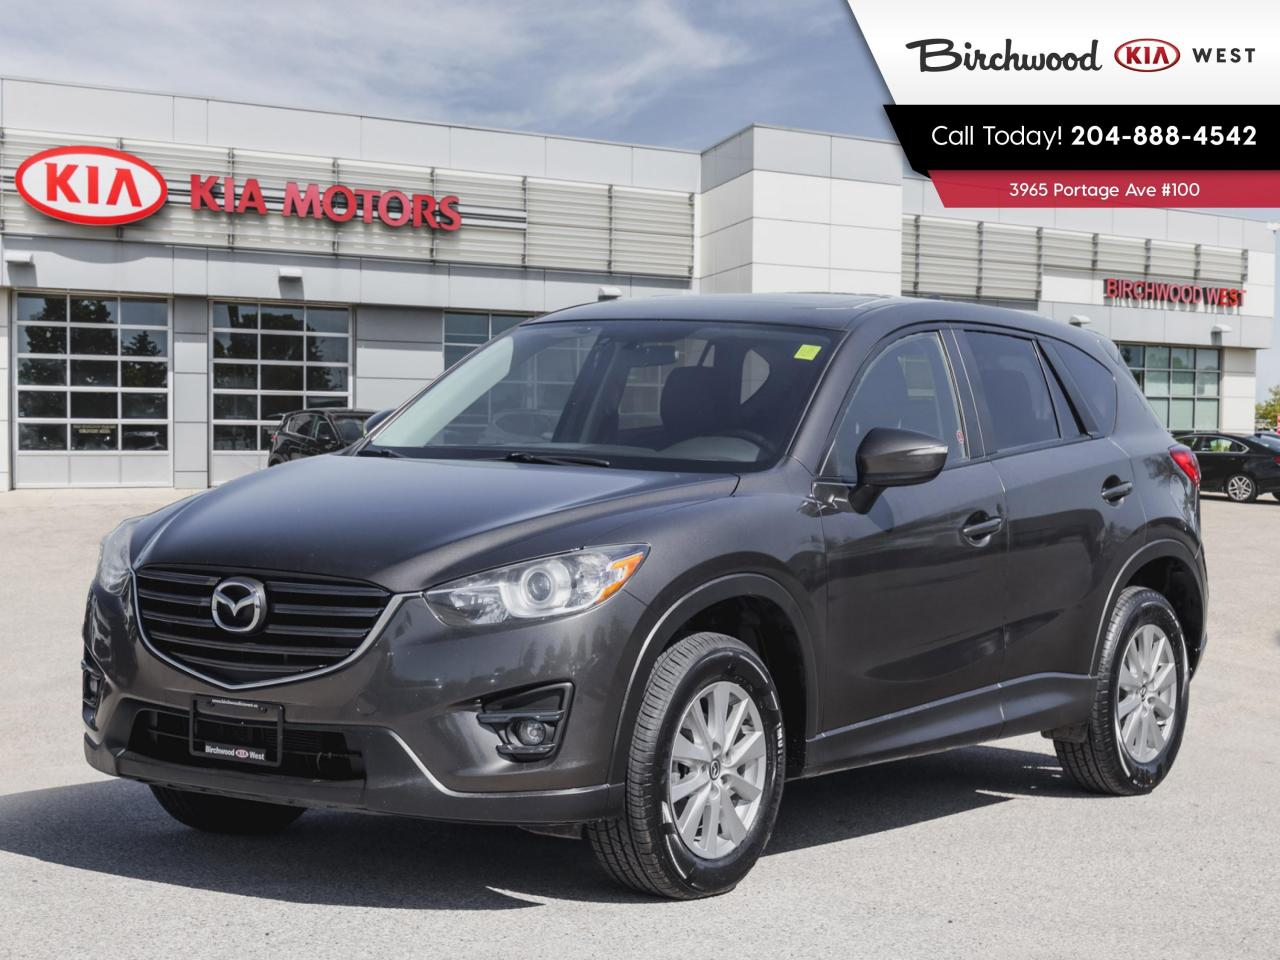 used 2016 mazda cx-5 gs awd local trade leather moon roof for sale in winnipeg, manitoba carpages.ca